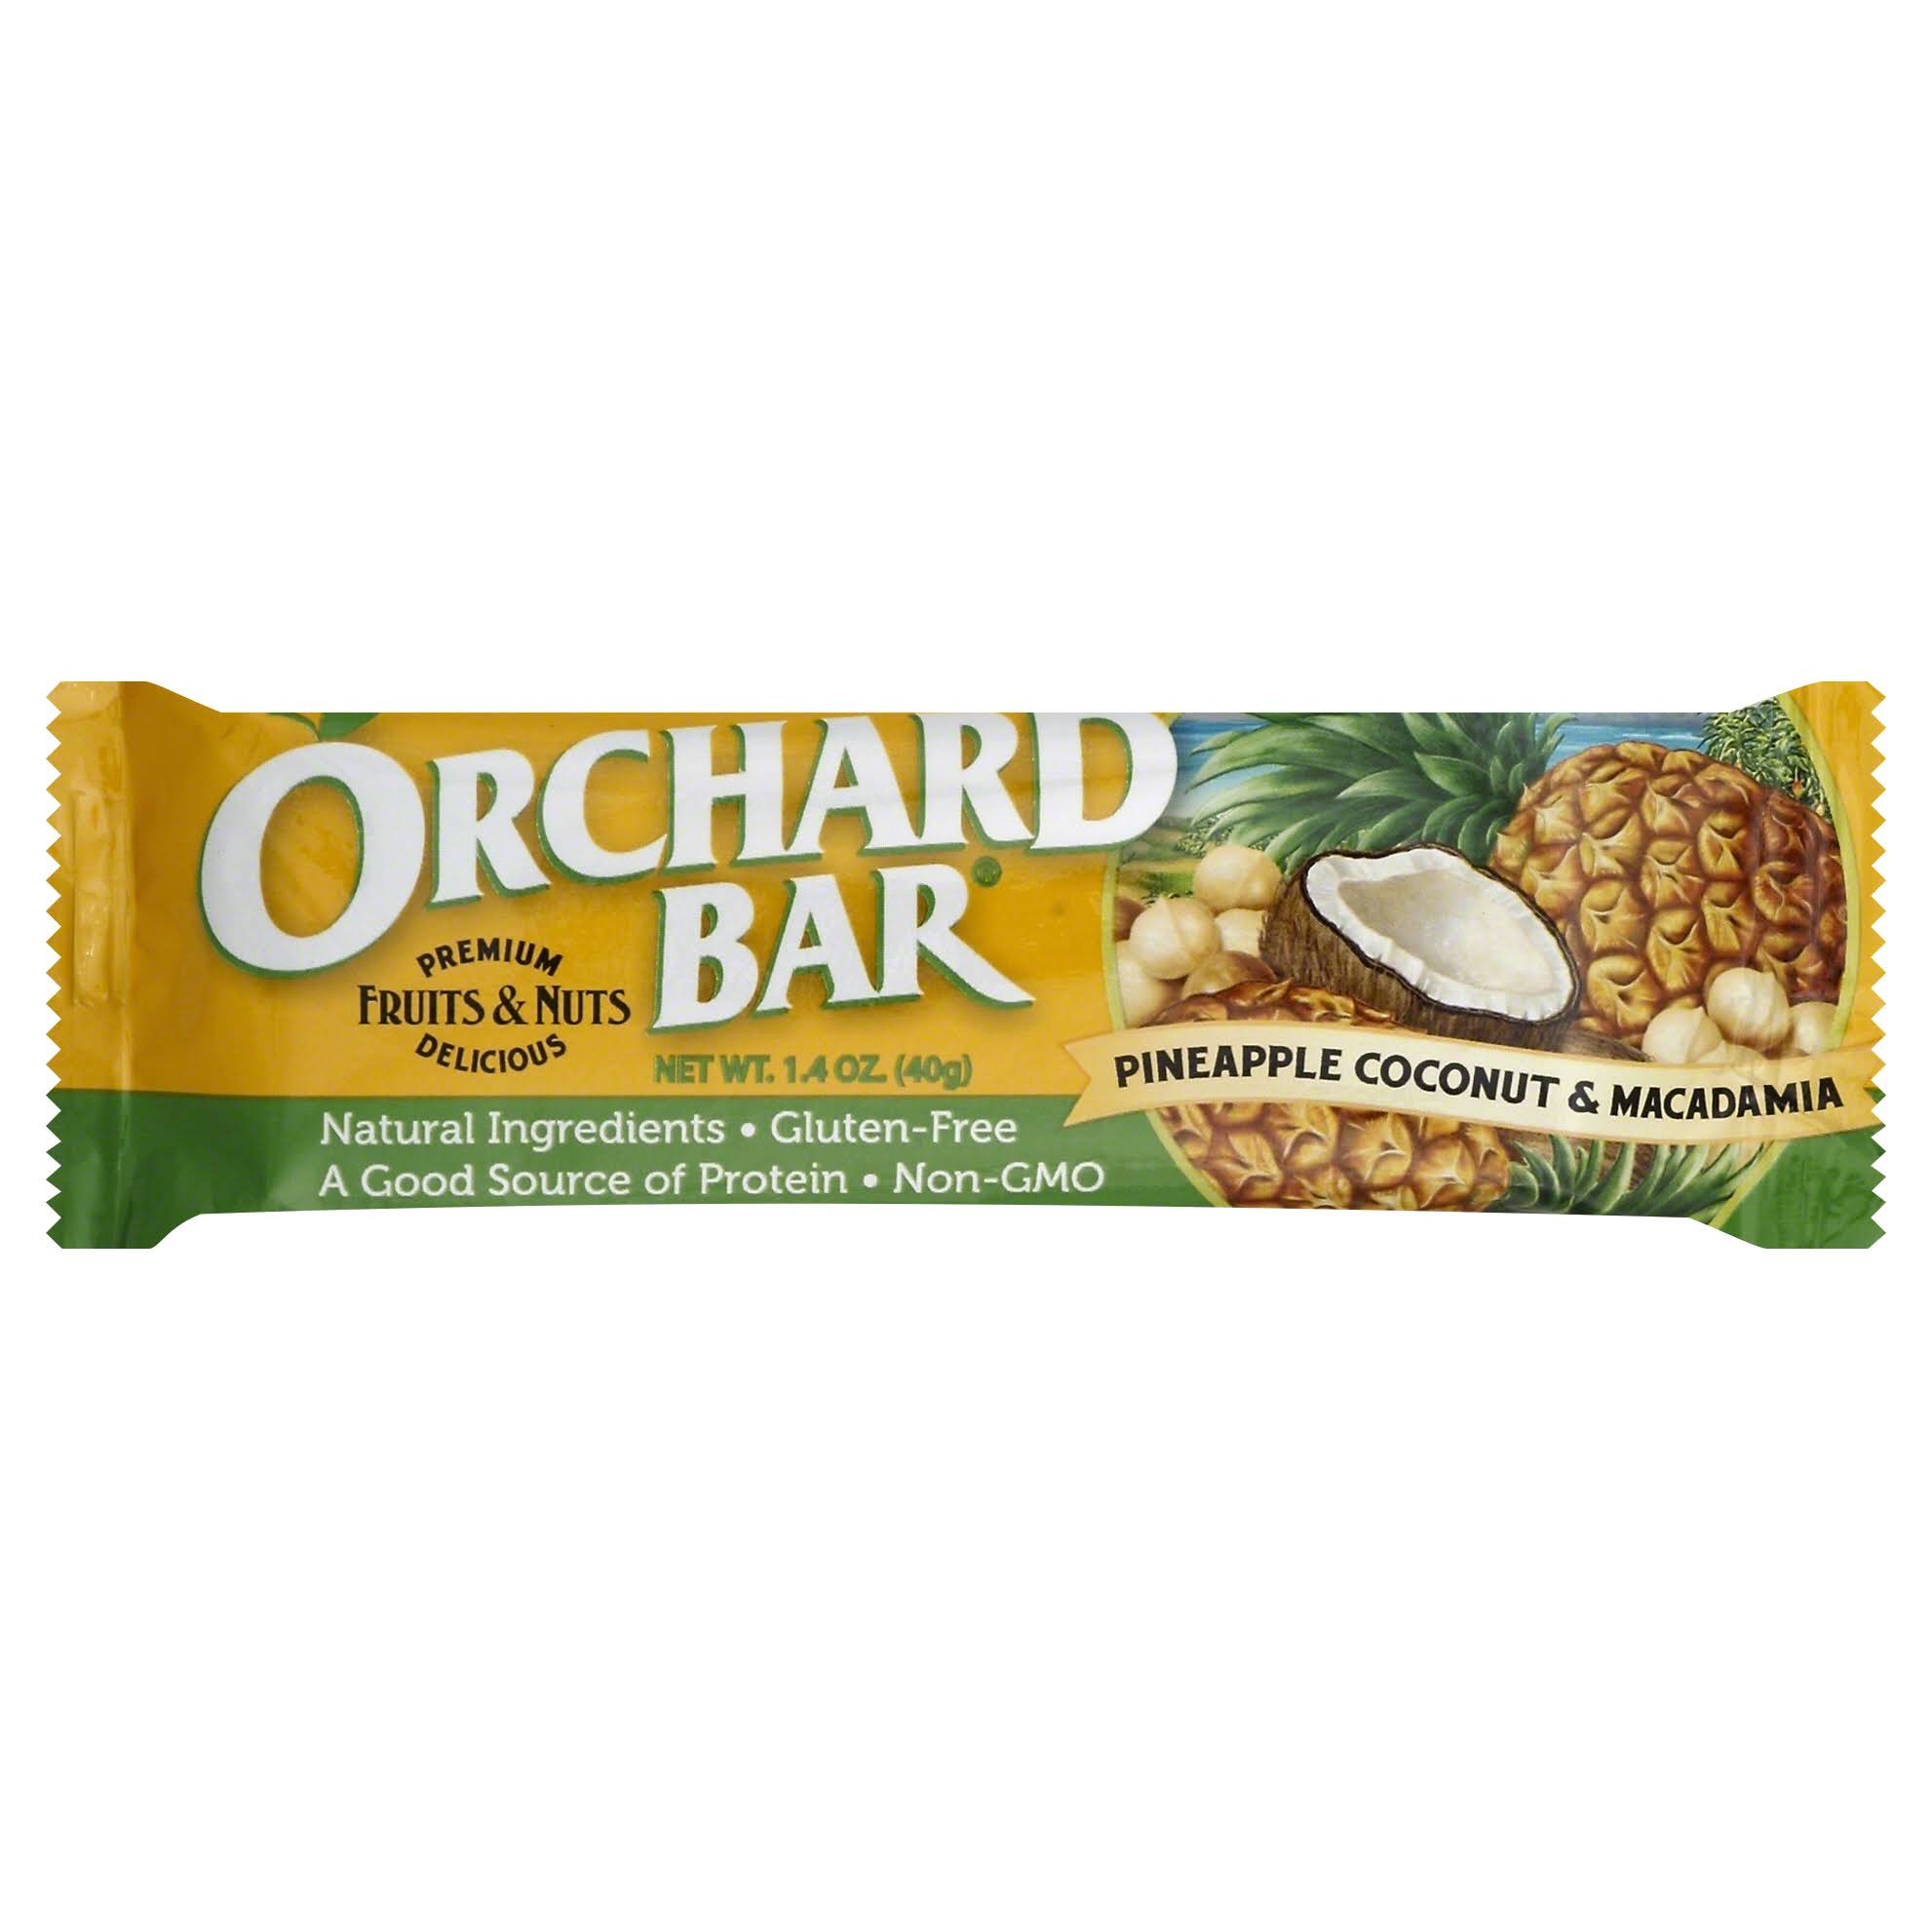 Orchard Bar Pineapple Coconut Macadamia Bars - 1.6 Oz